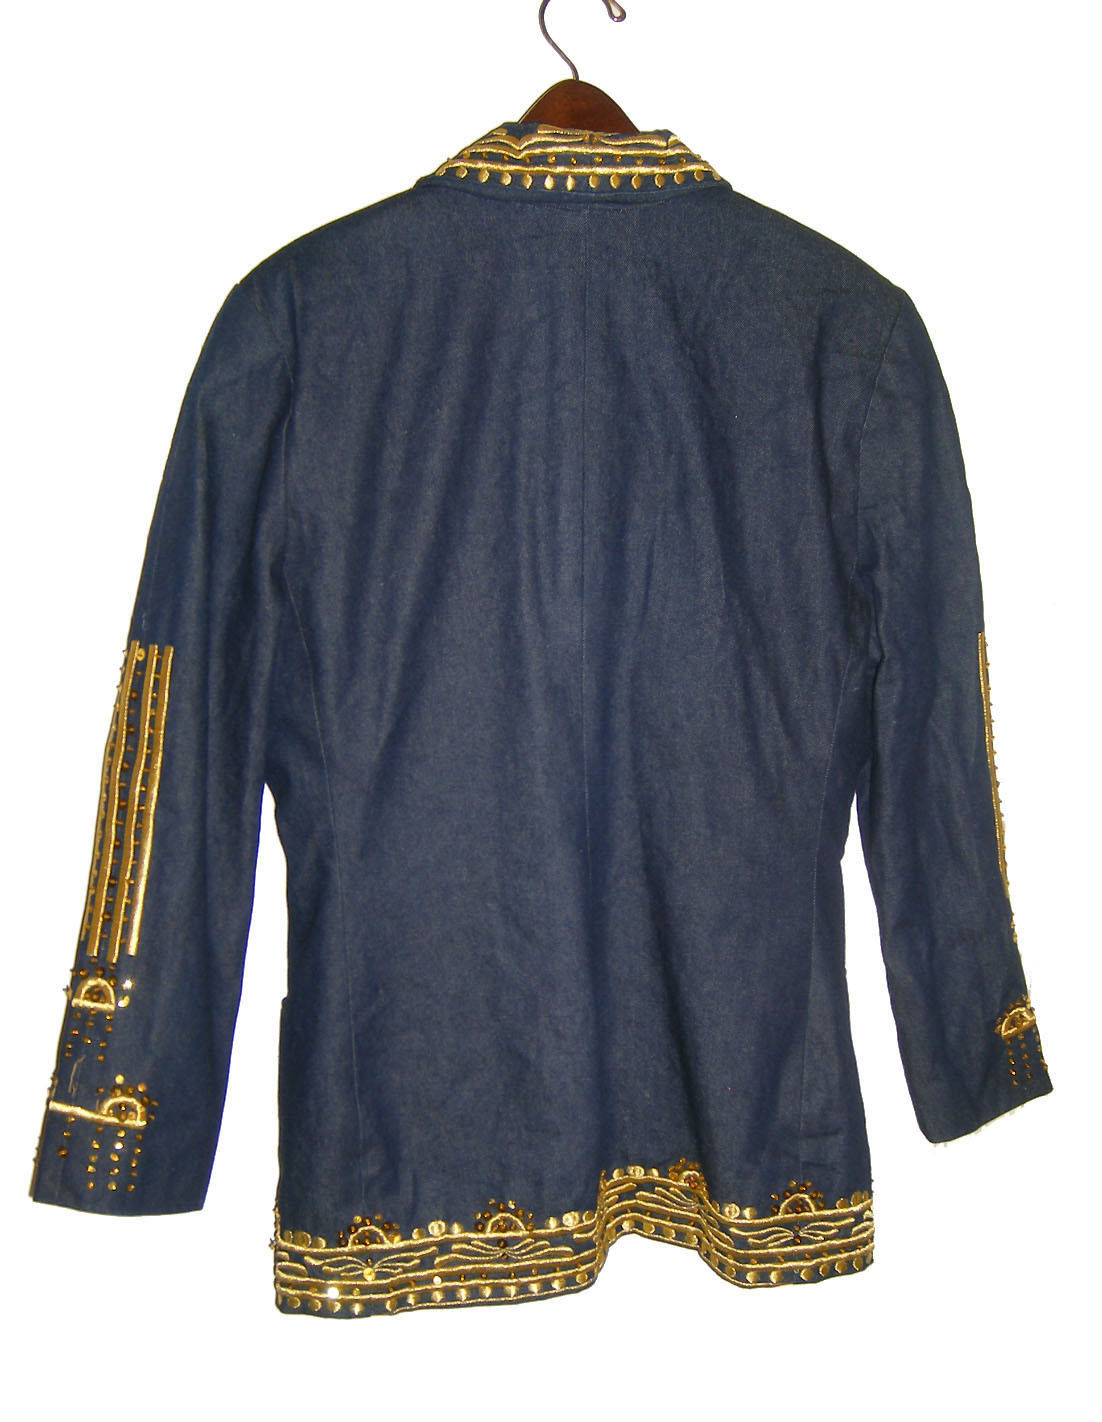 Gorgeous NWOT Denim Skirt Suit with Gold Embellishments by EXIT SHOPS Size L/M